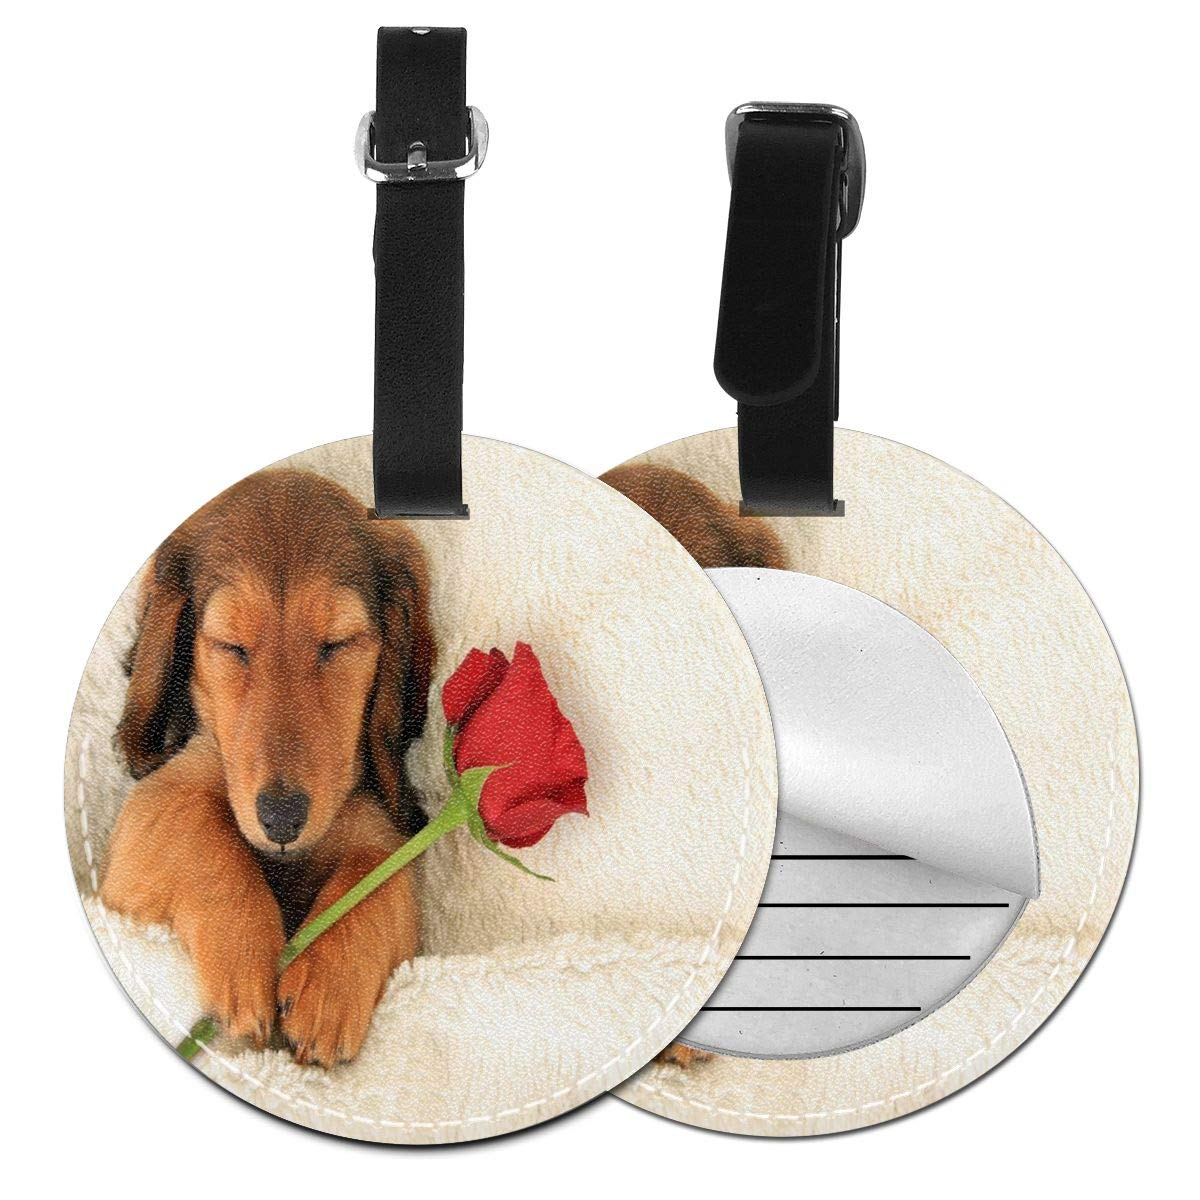 Dog Sleeping On Valentine's Day Luggage Tags Travel Bag ID Suitcase Labels for Women Men 4 Pack by Rachel Dora